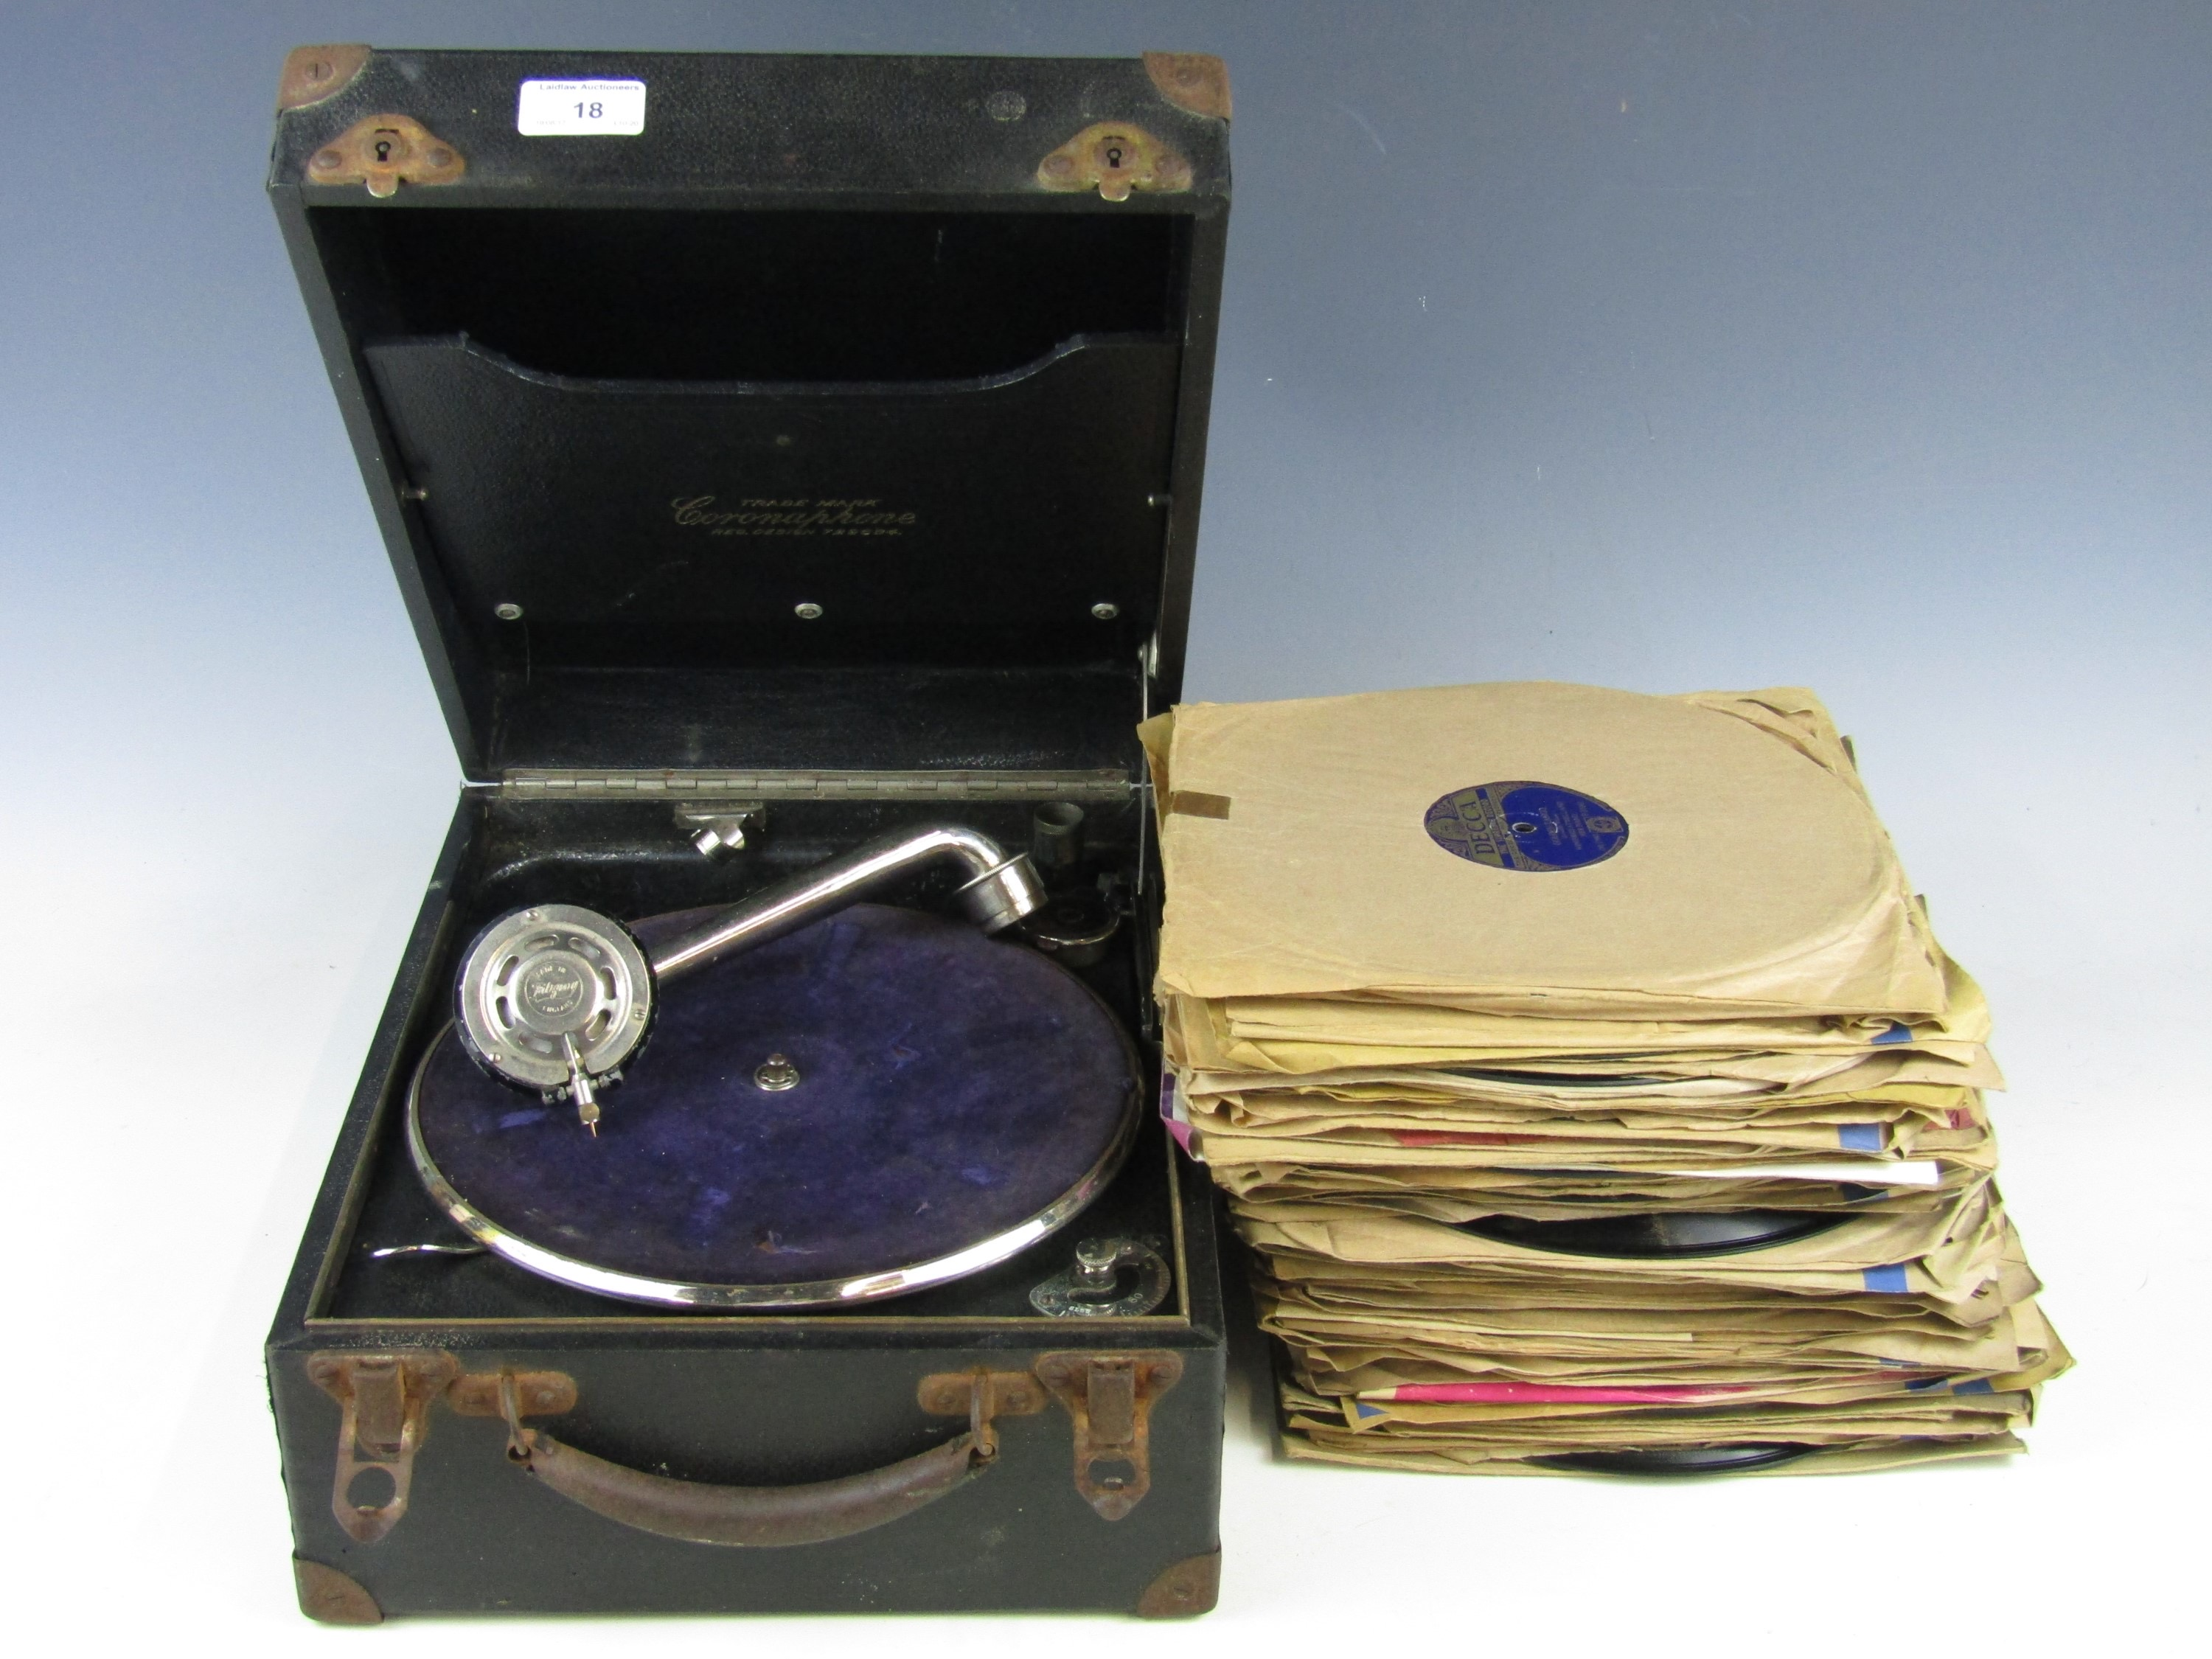 Lot 18 - A vintage portable gramophone with a quantity of records